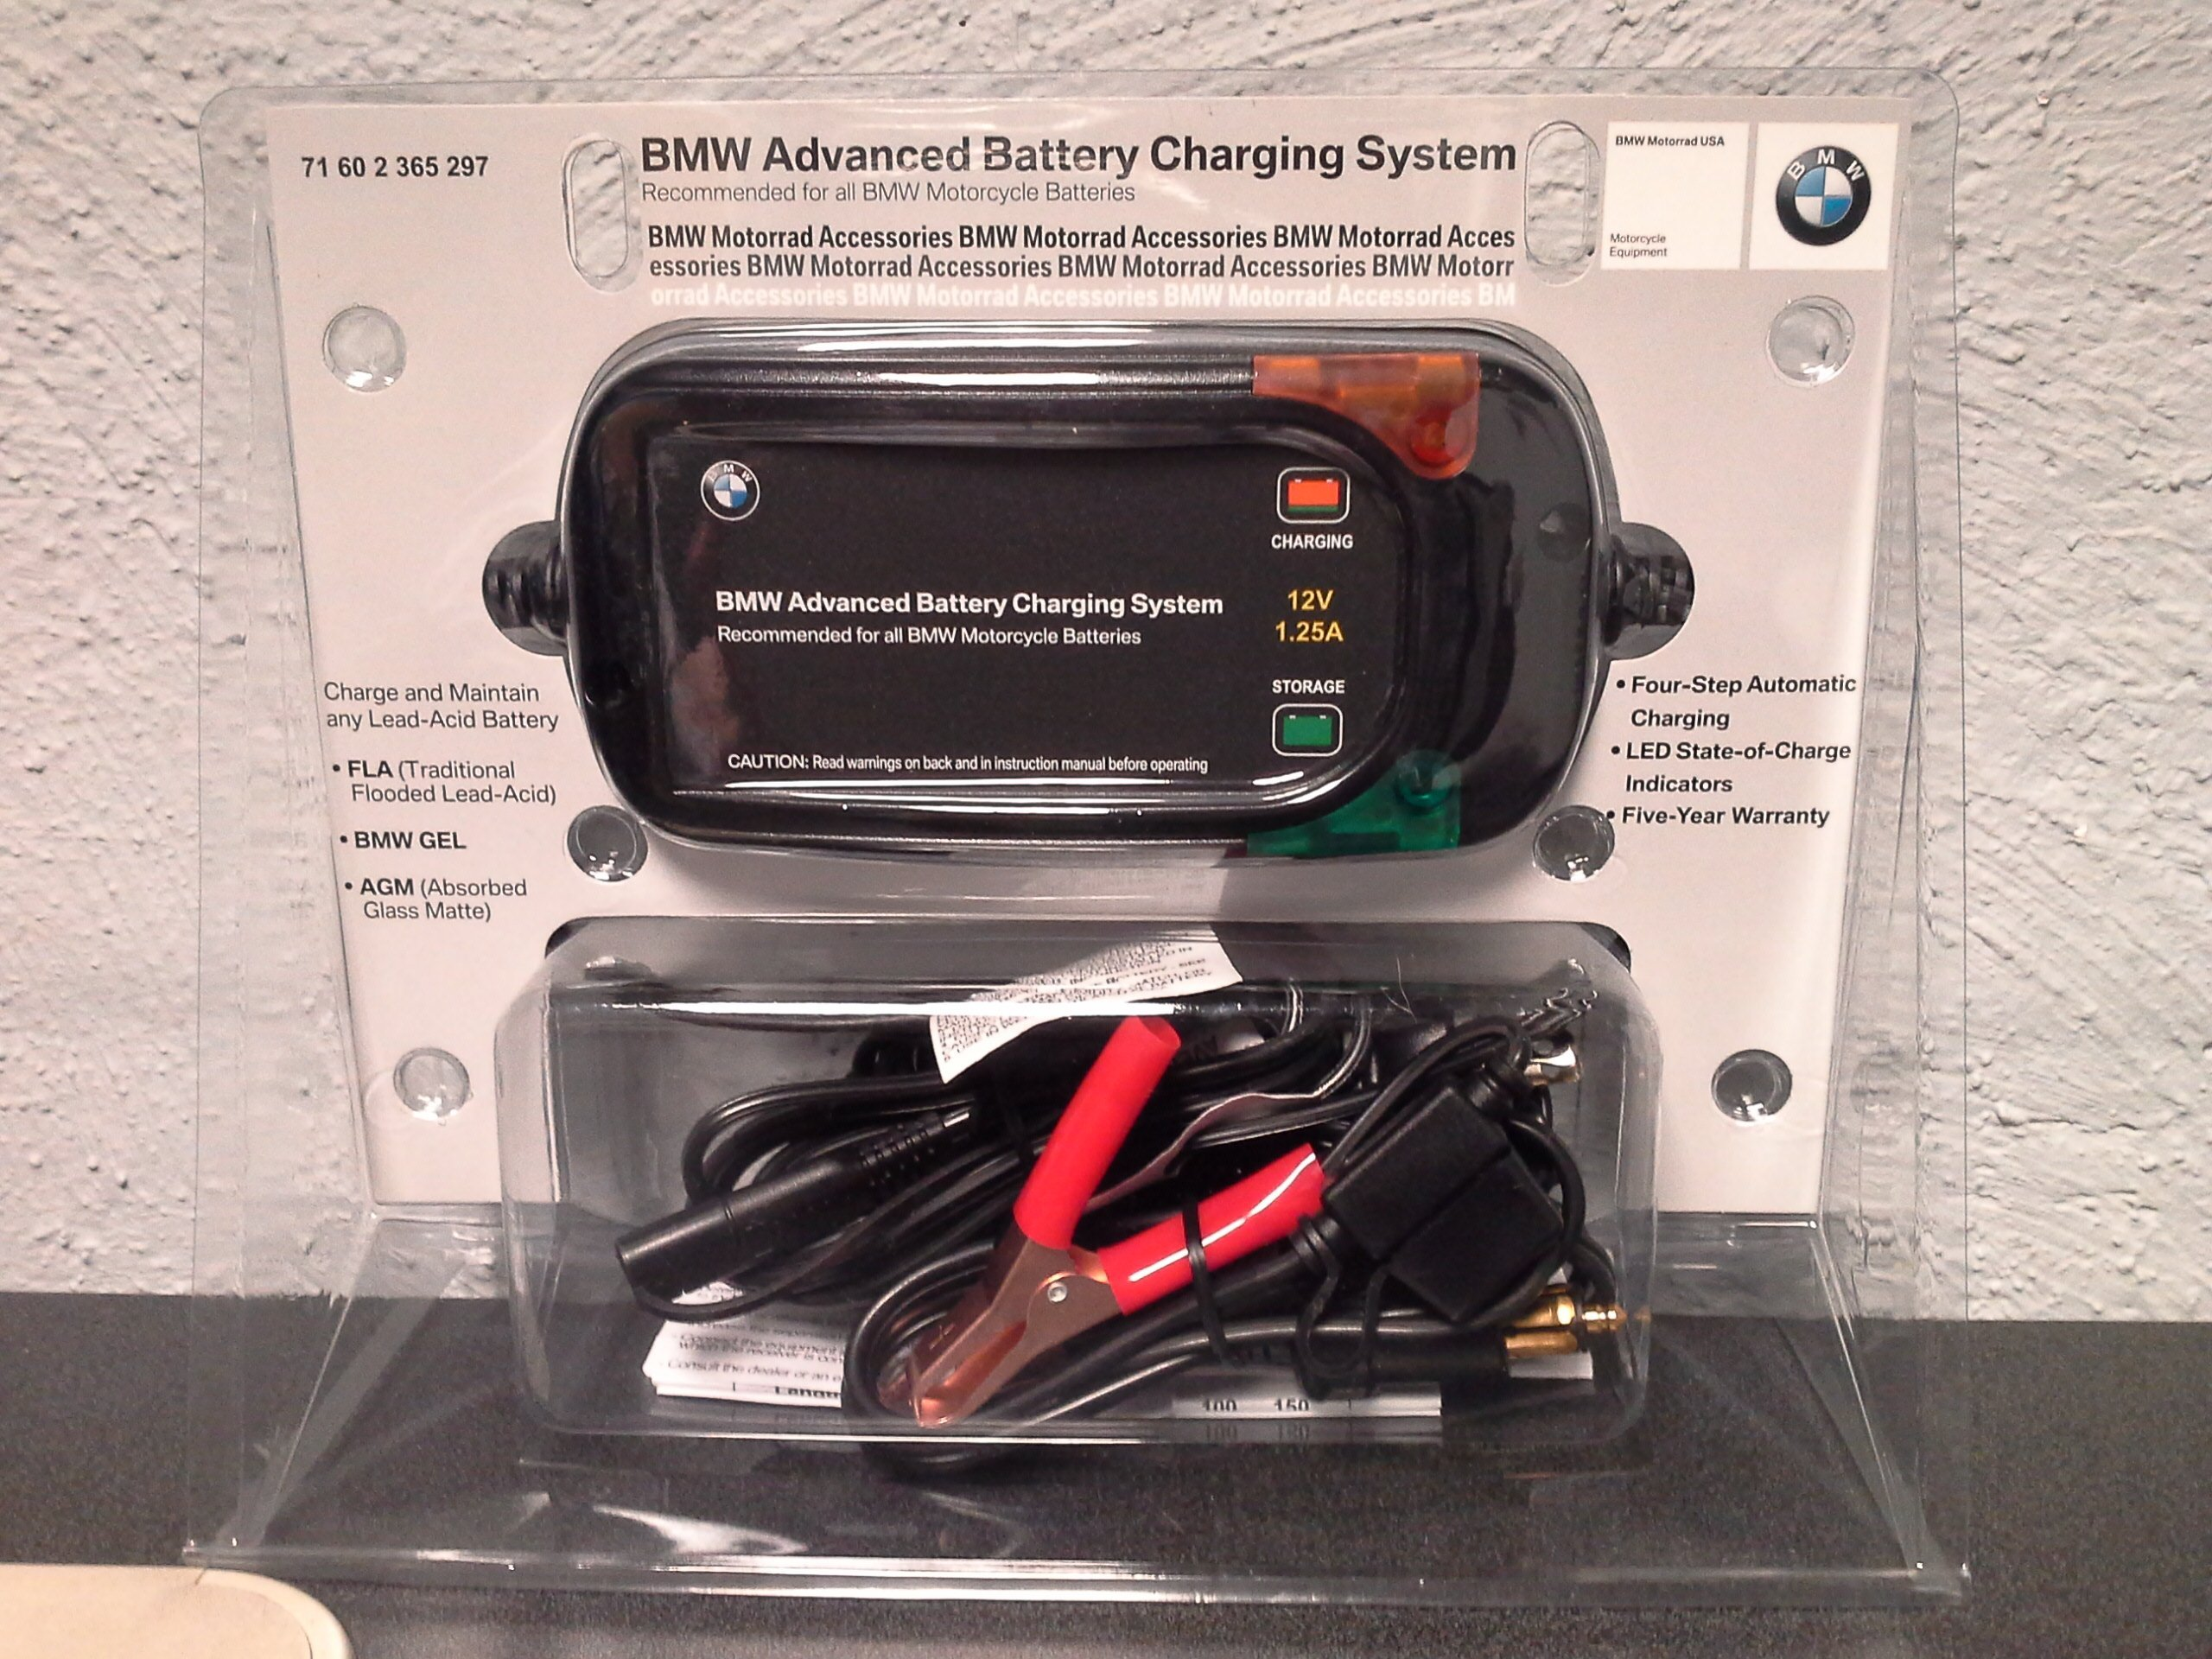 NEW Model BMW Advanced Battery Charging System by BMW (Image #2)